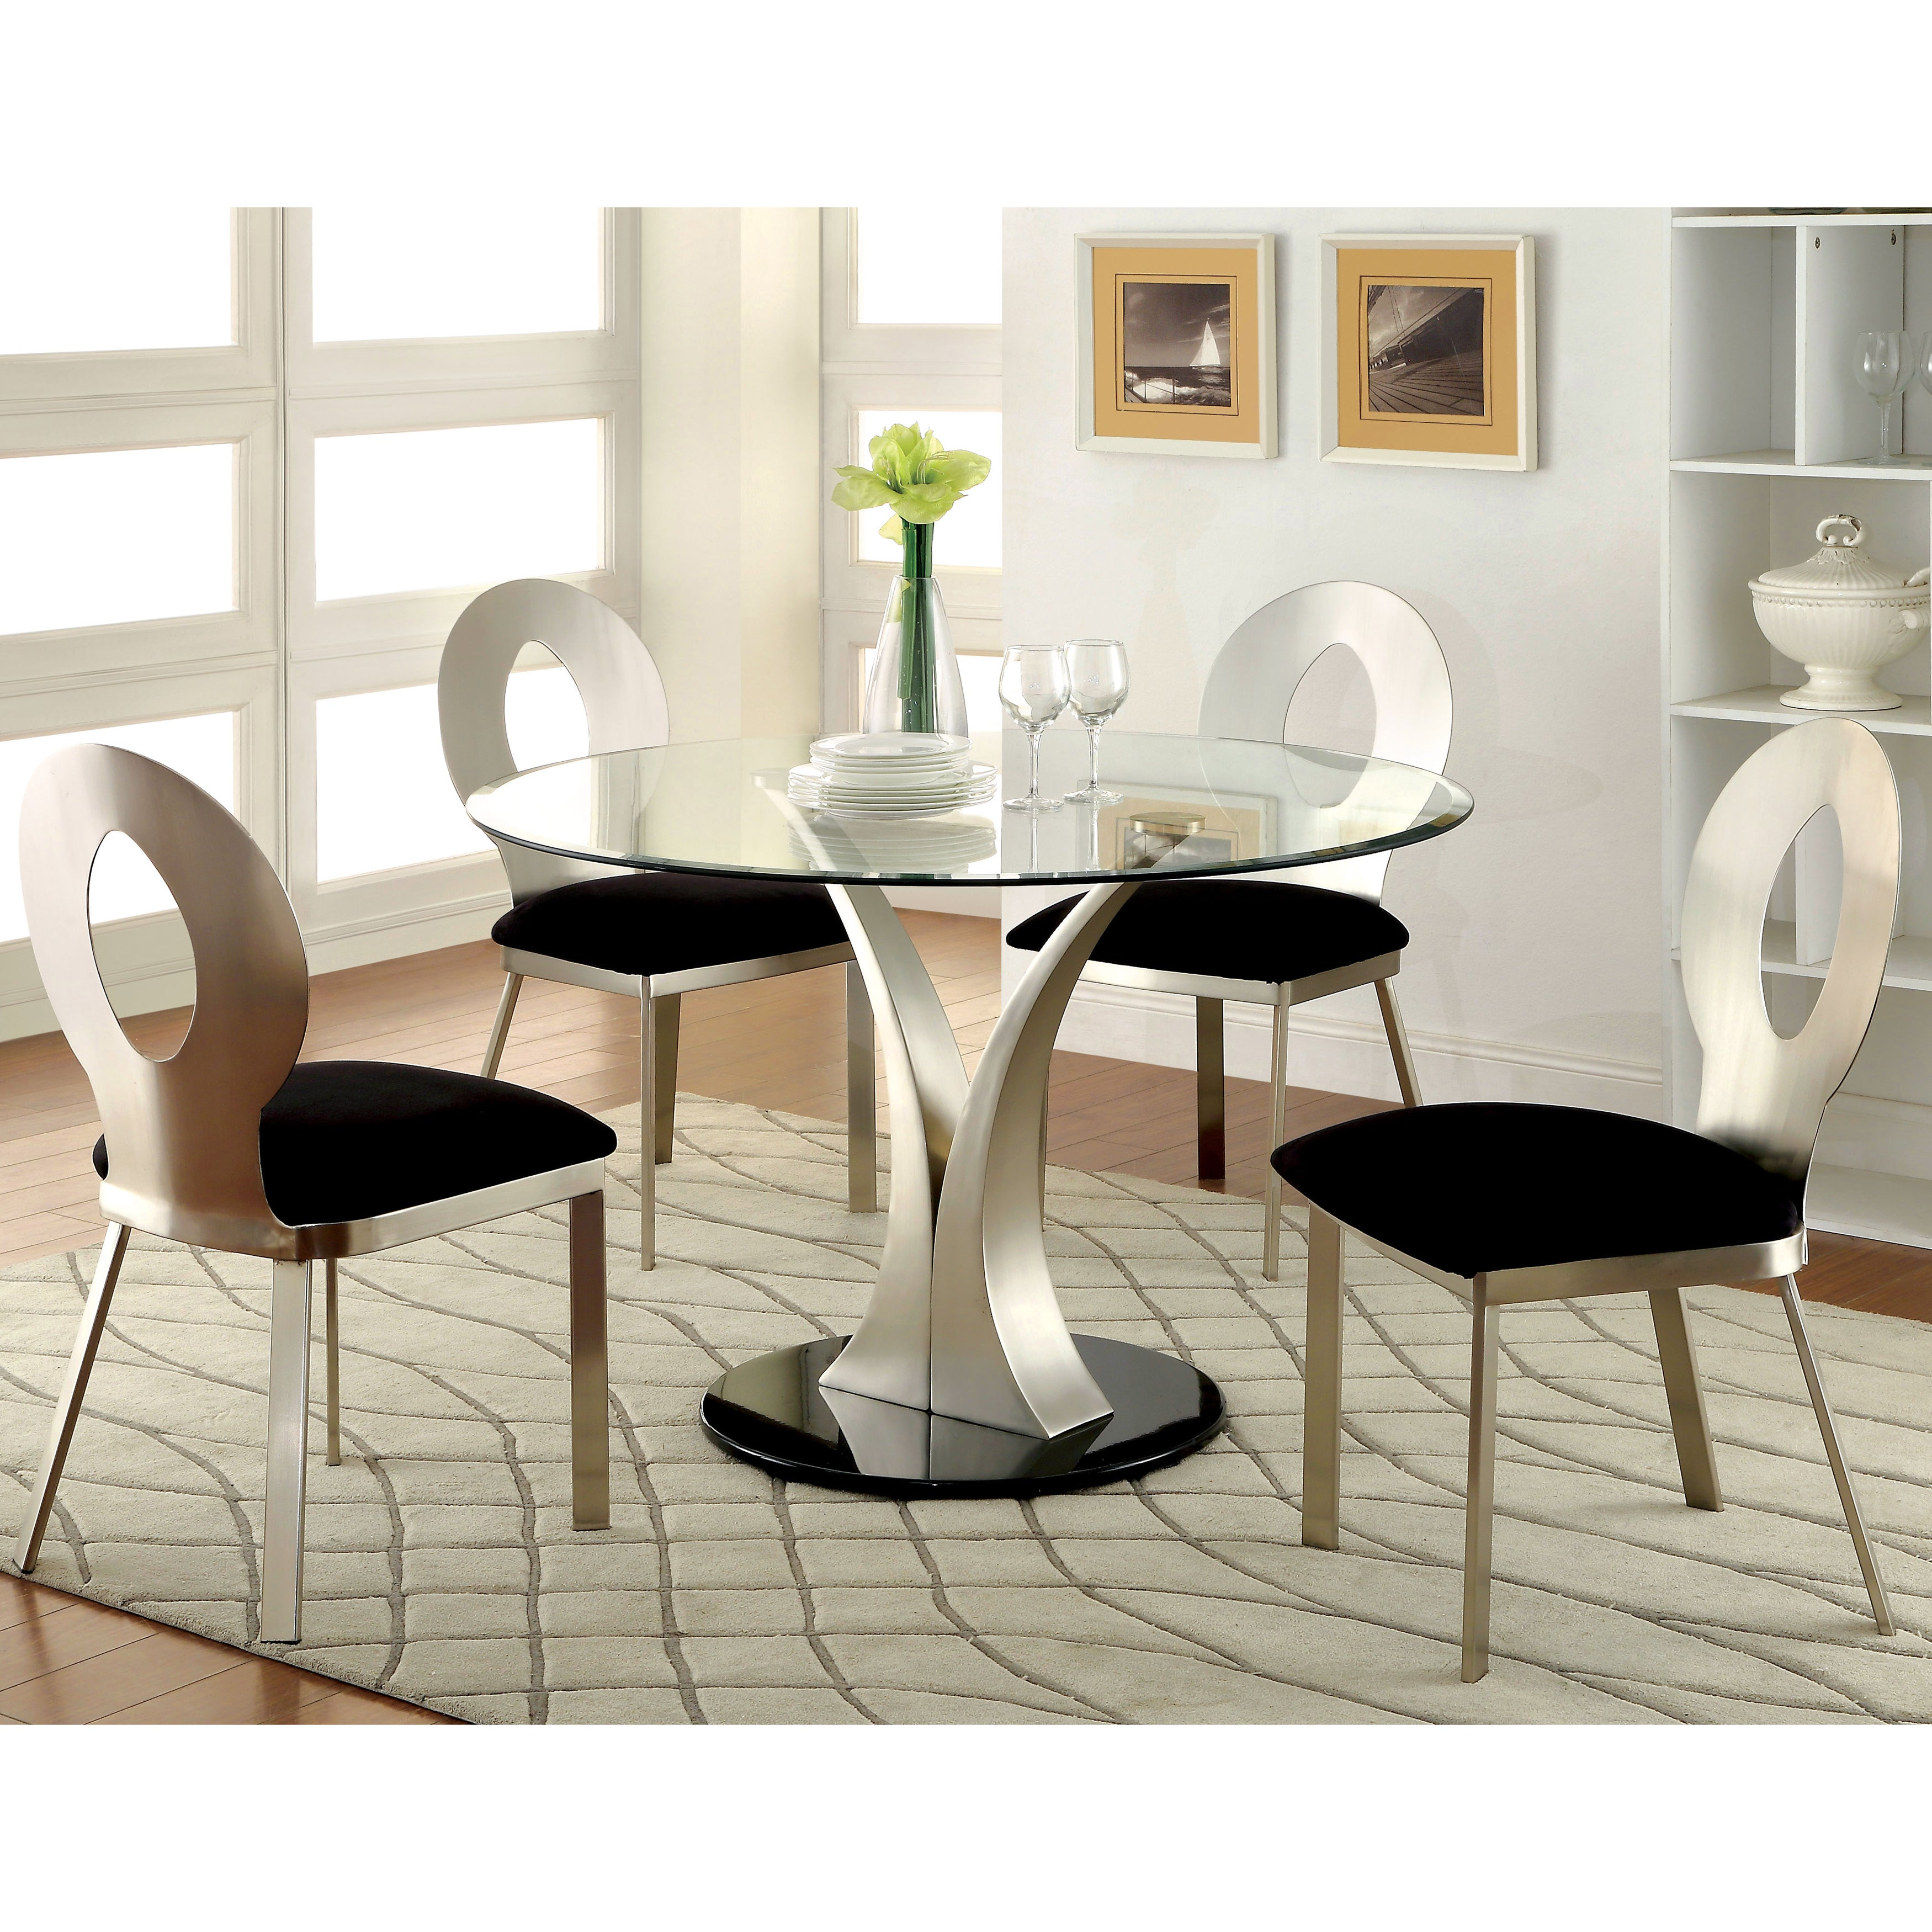 Sculpture III Contemporary Silver Dining Table by FOA - Satin